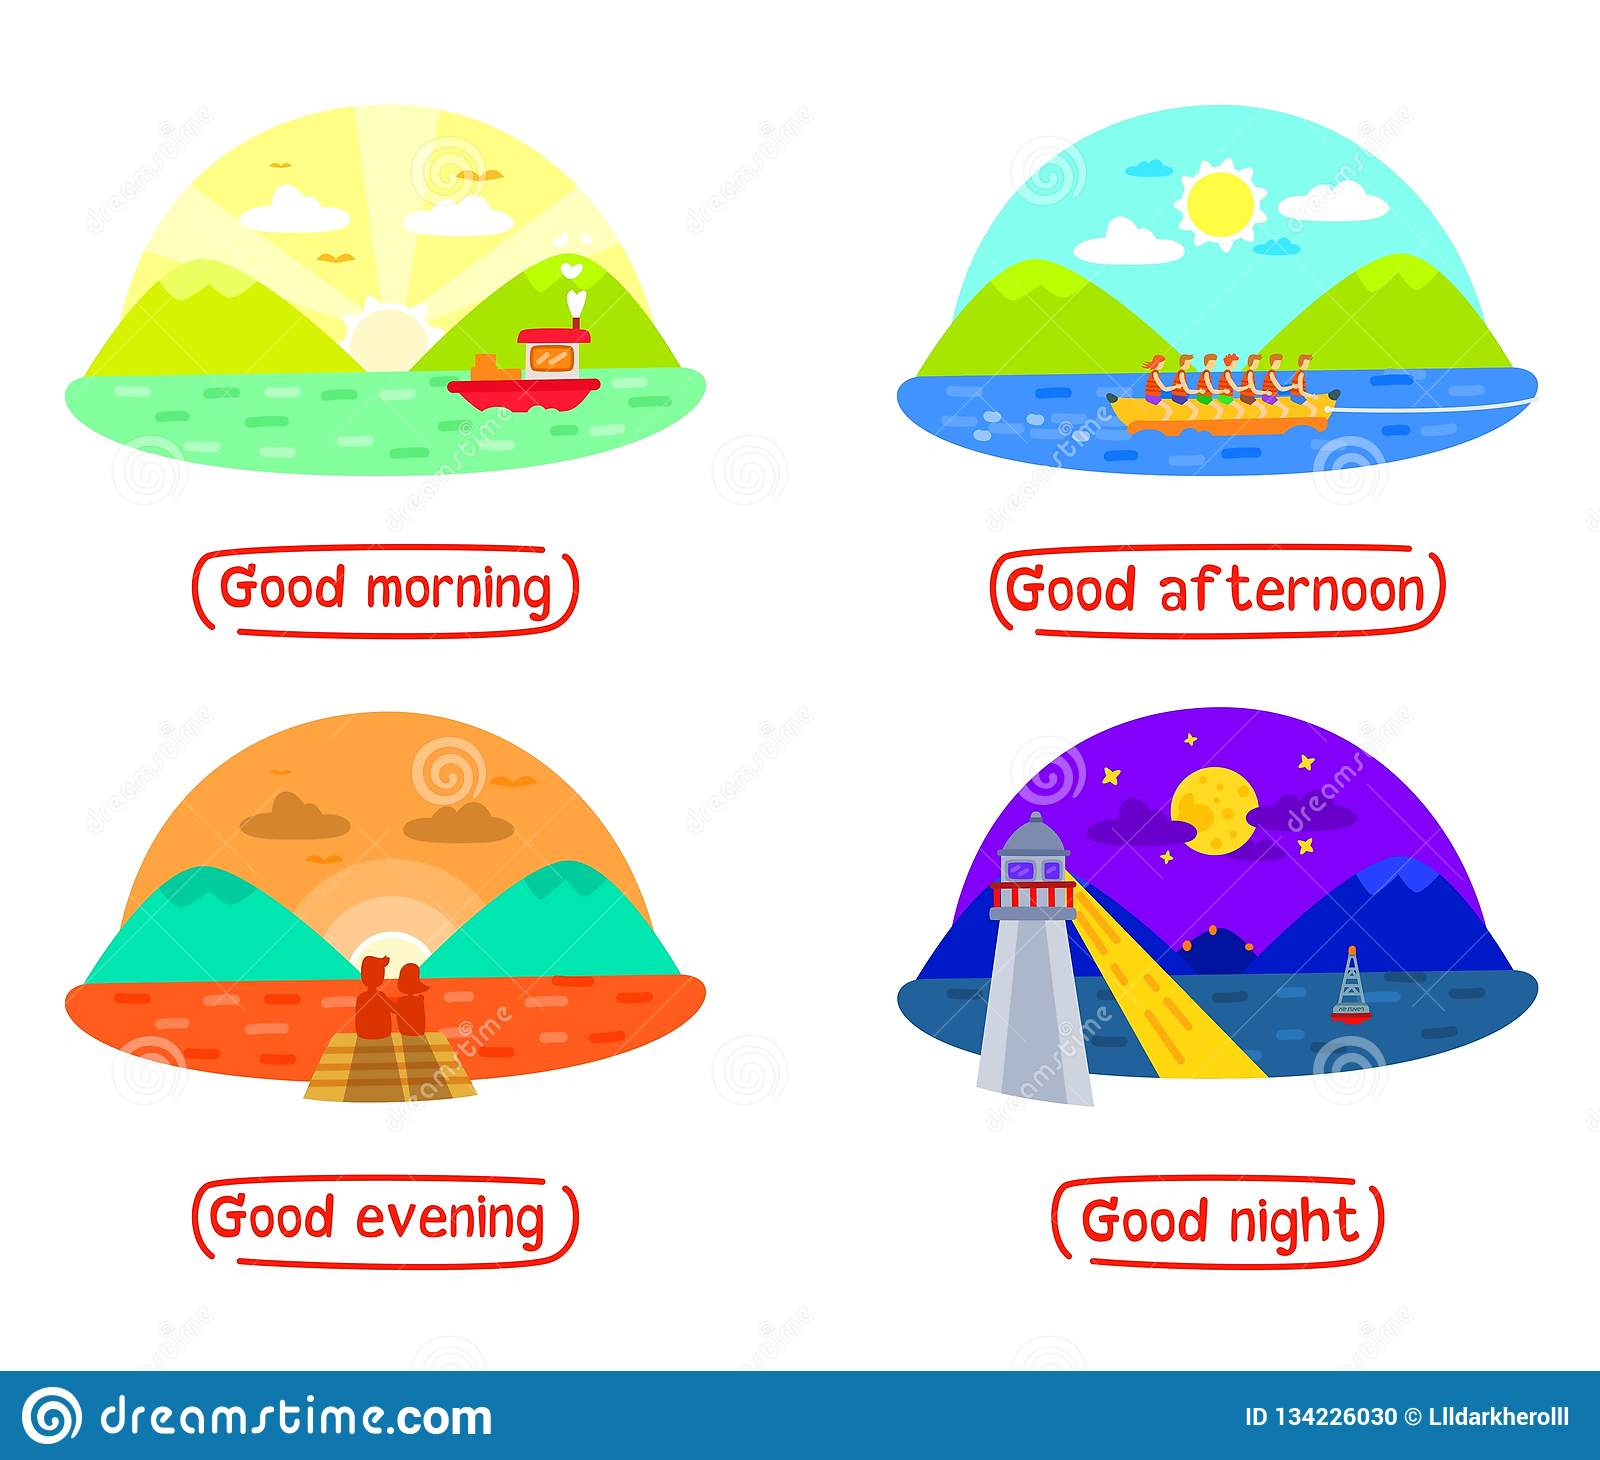 Lovely Afternoon Clip Art